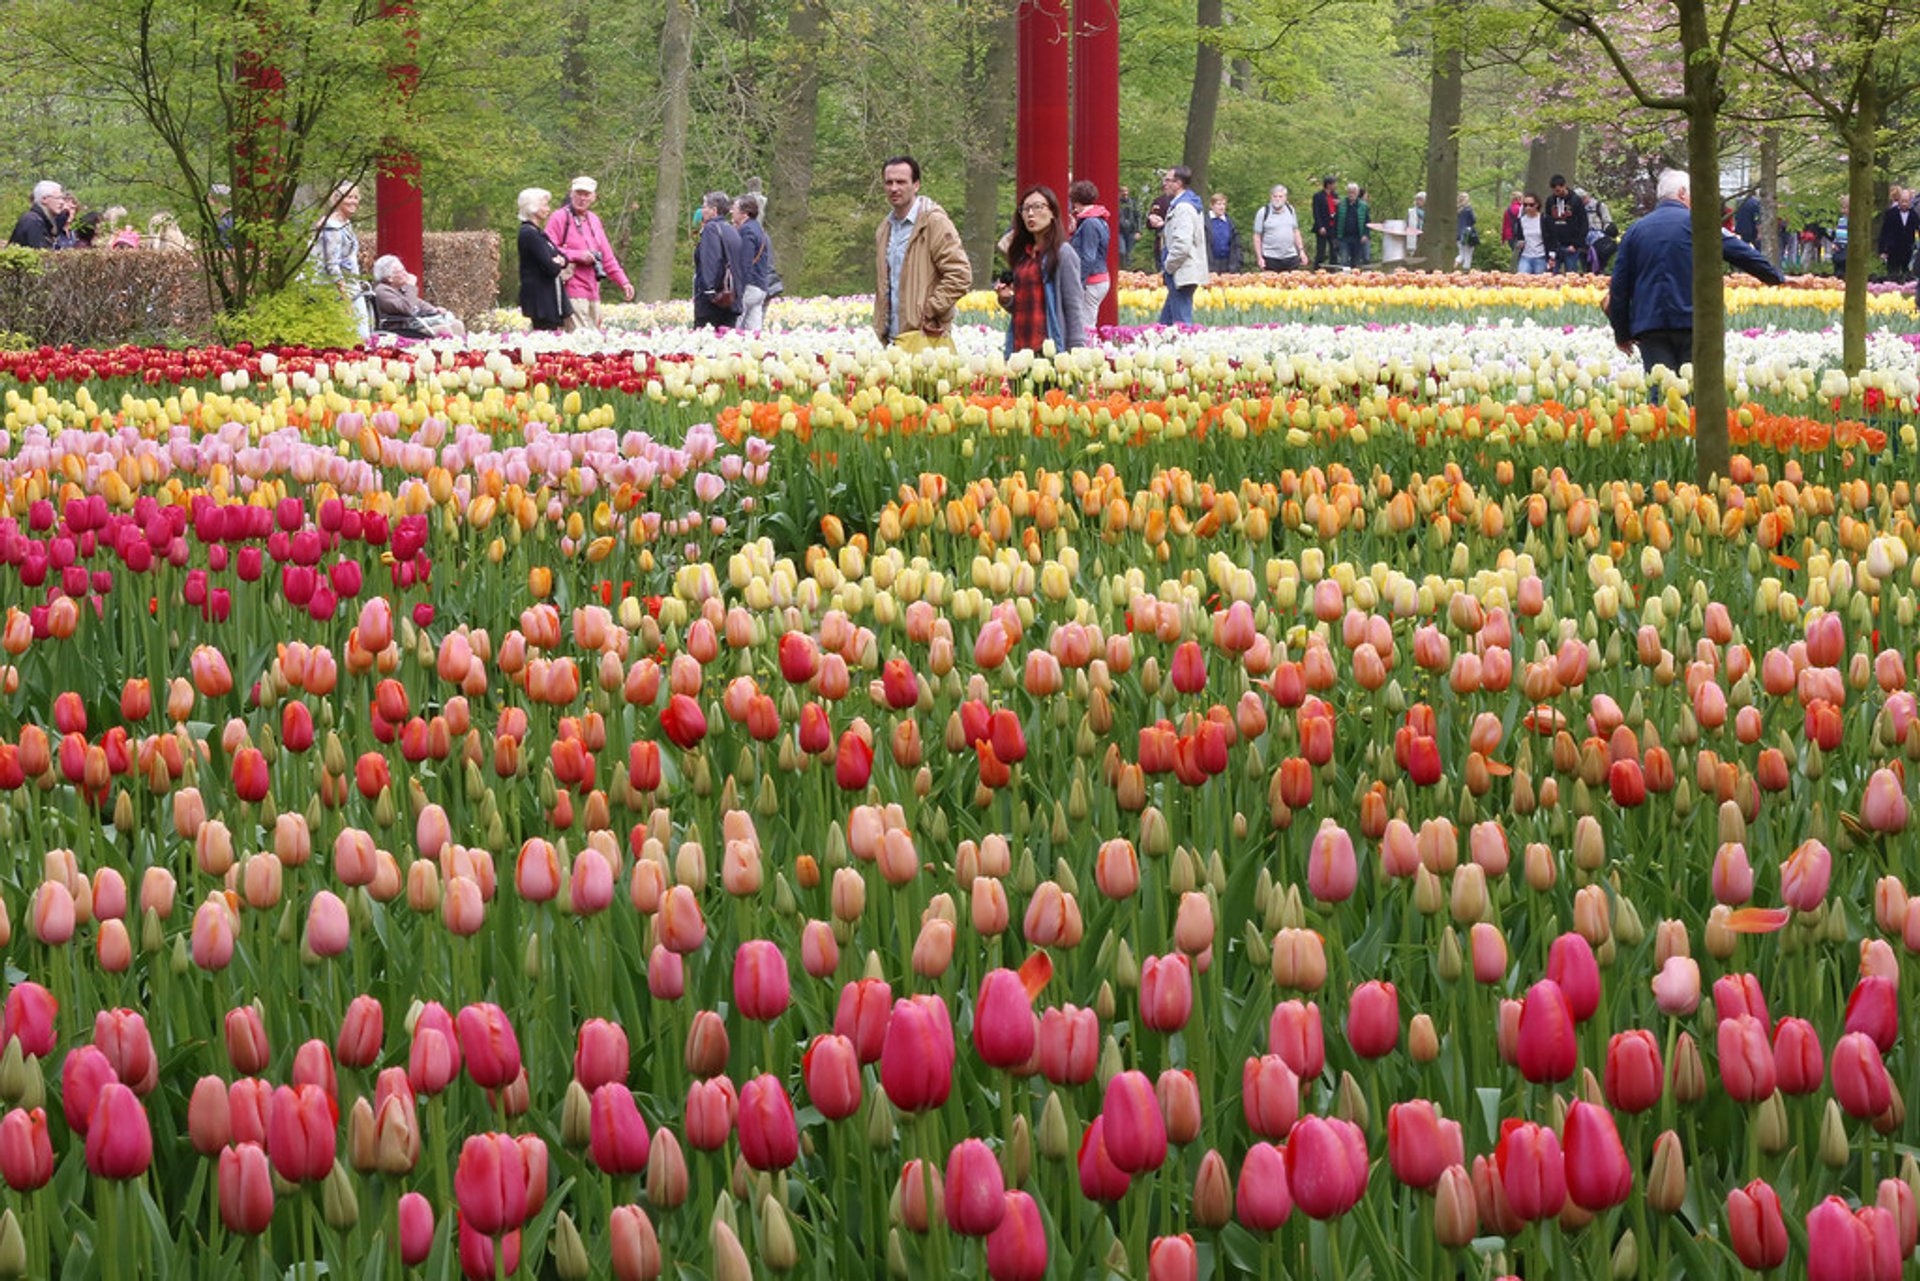 Best time to see Keukenhof (Garden of Europe) in The Netherlands 2020